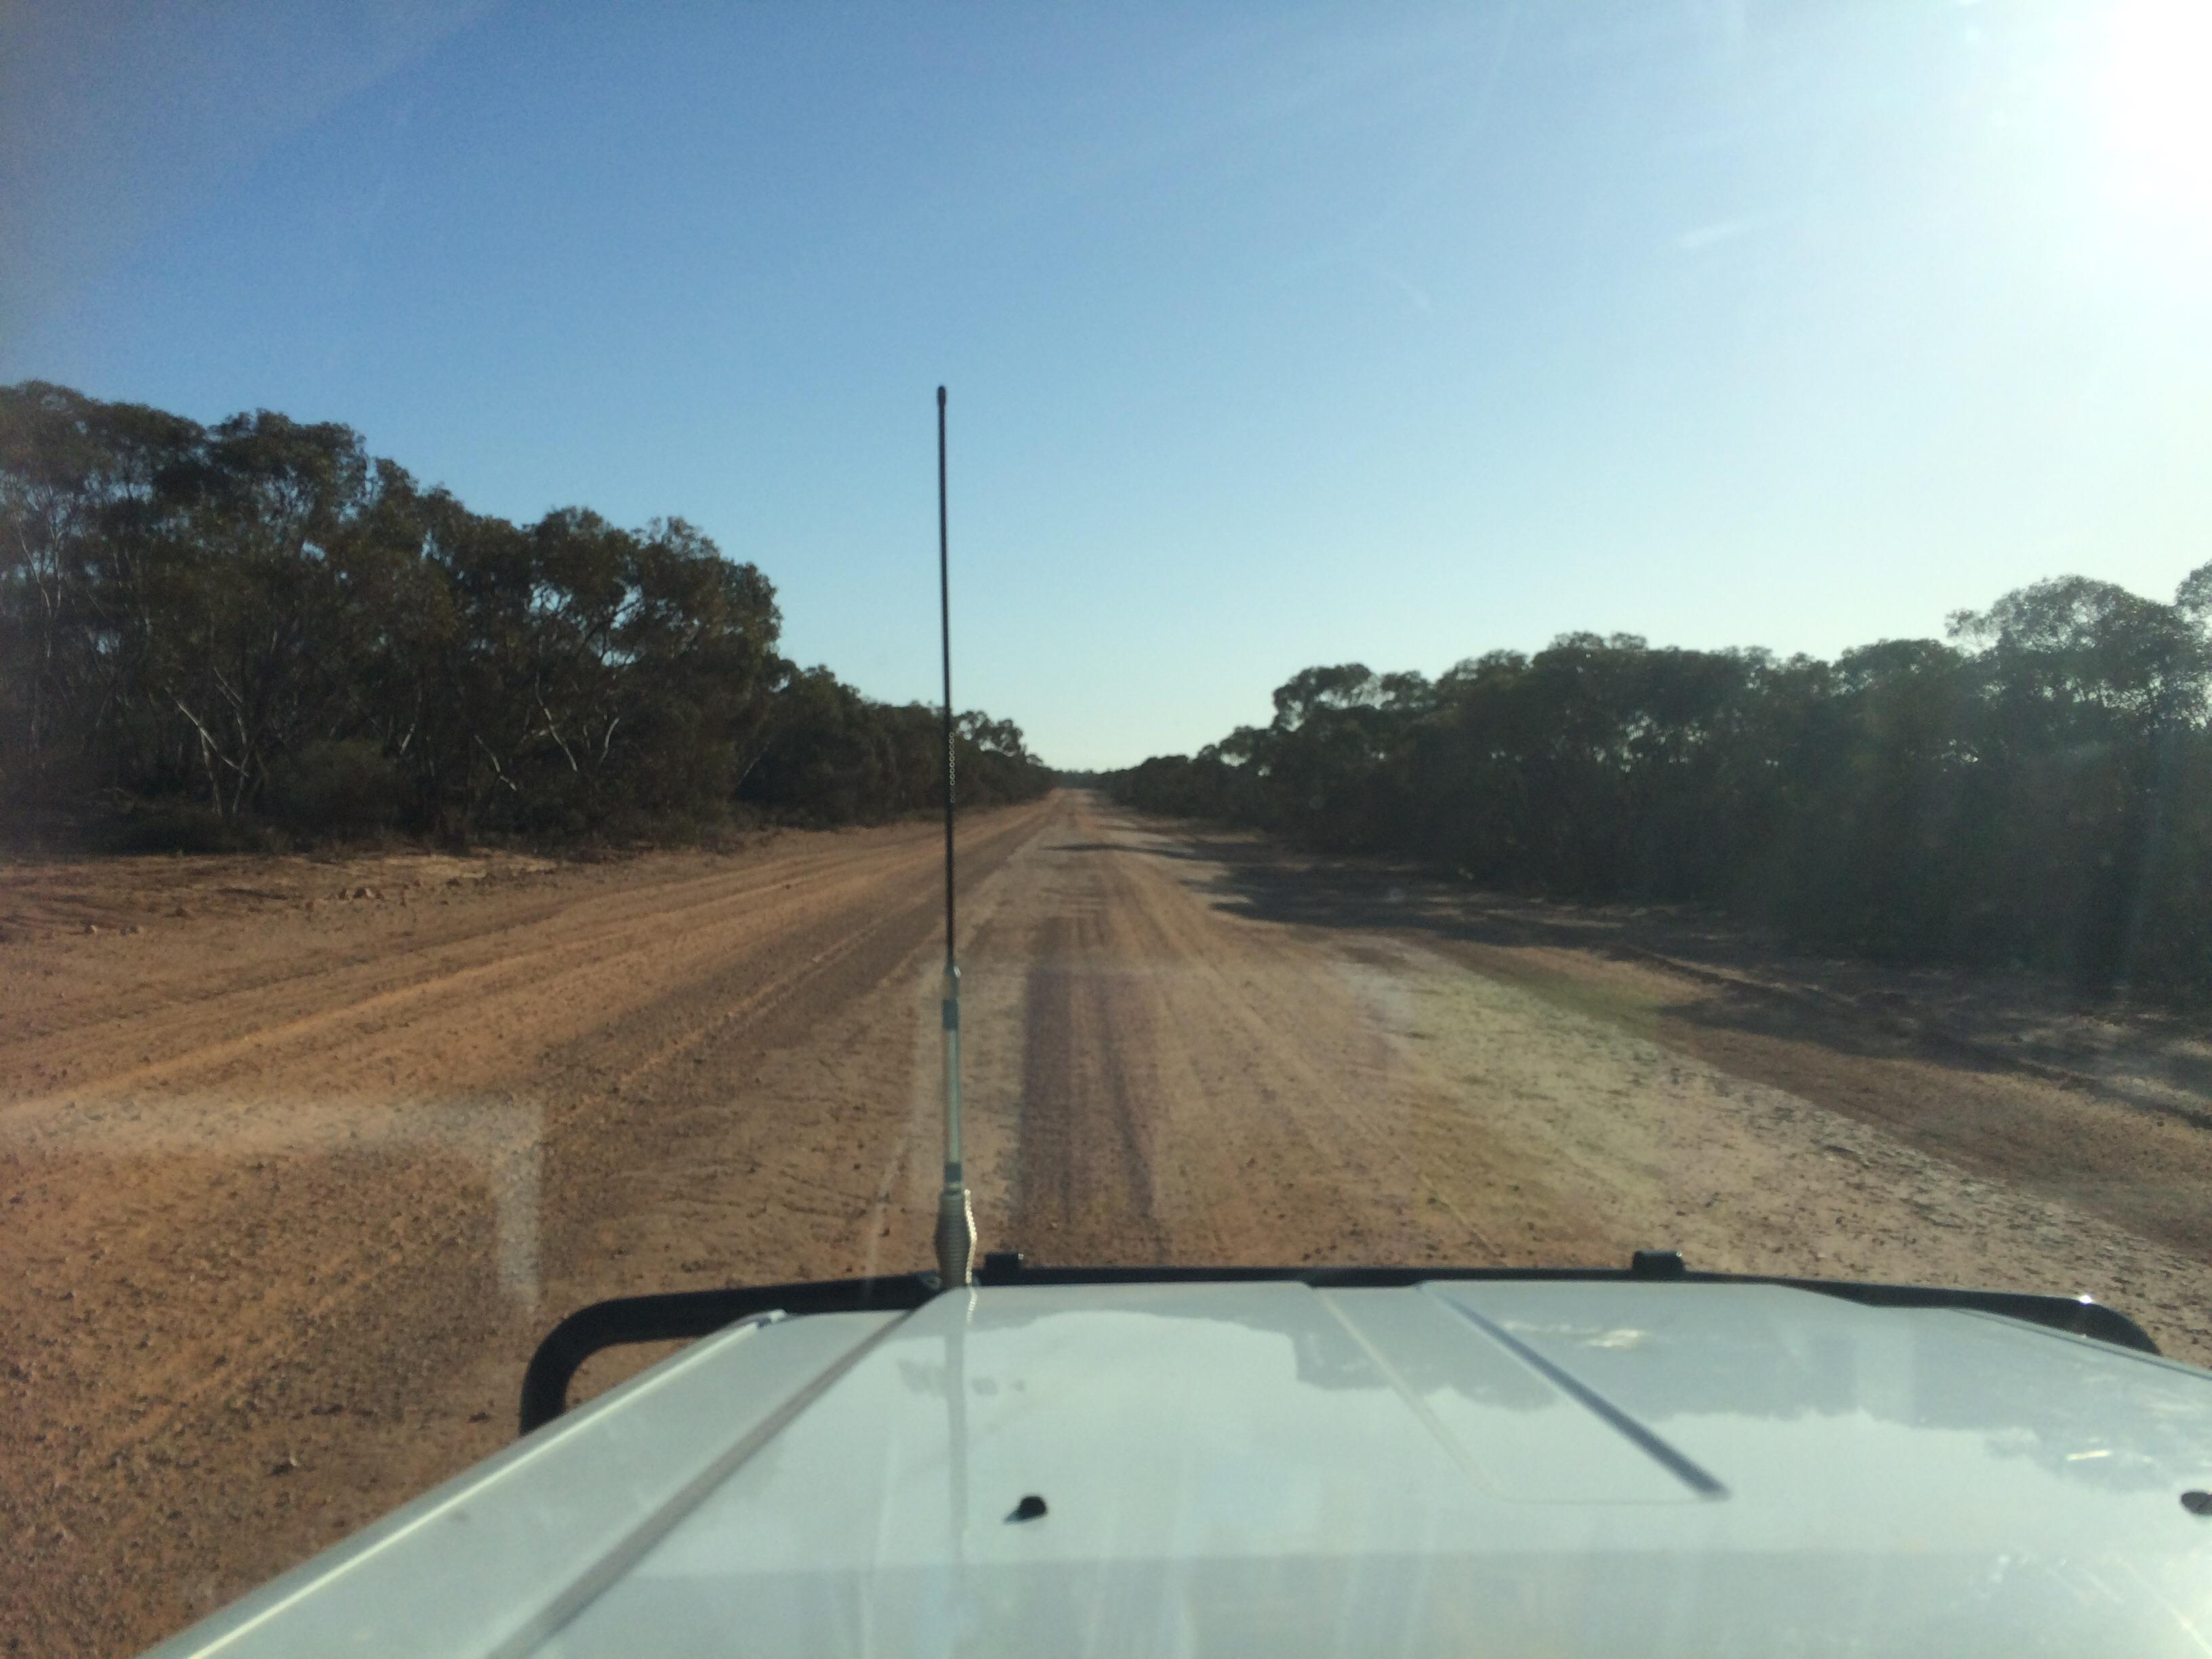 110kms of dirt road to Mungo NP